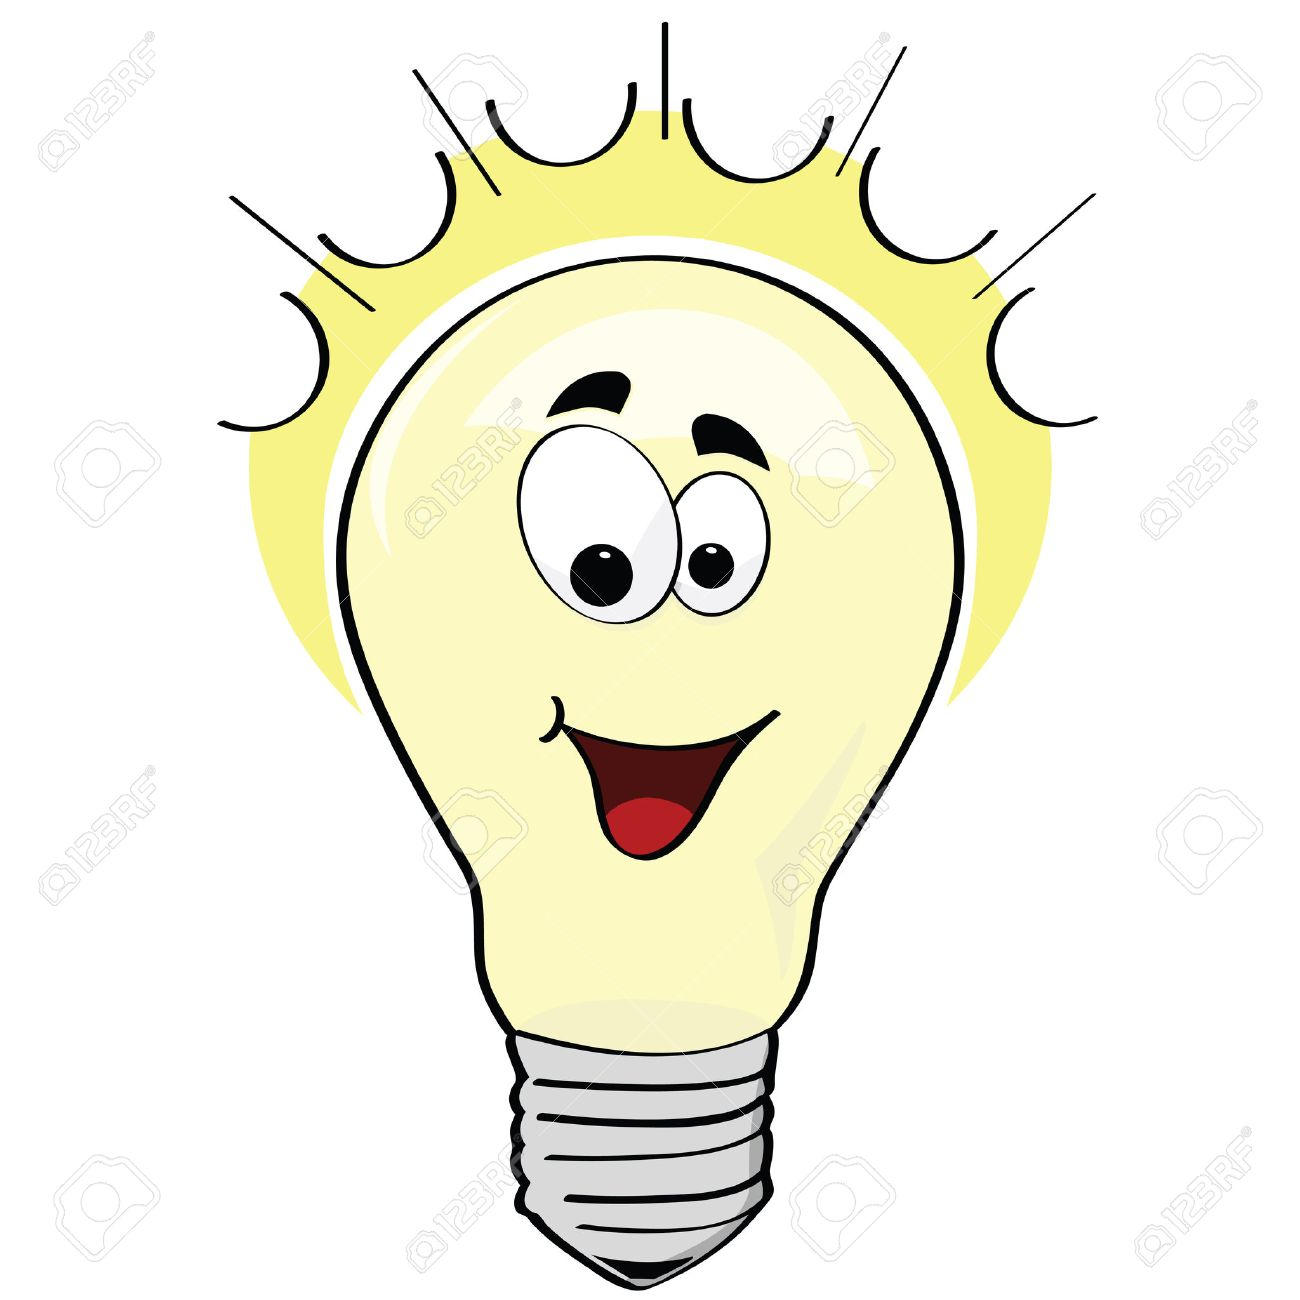 1300x1300 Cartoon Illustration Of A Happy Lightbulb, Or A Happy Idea Royalty